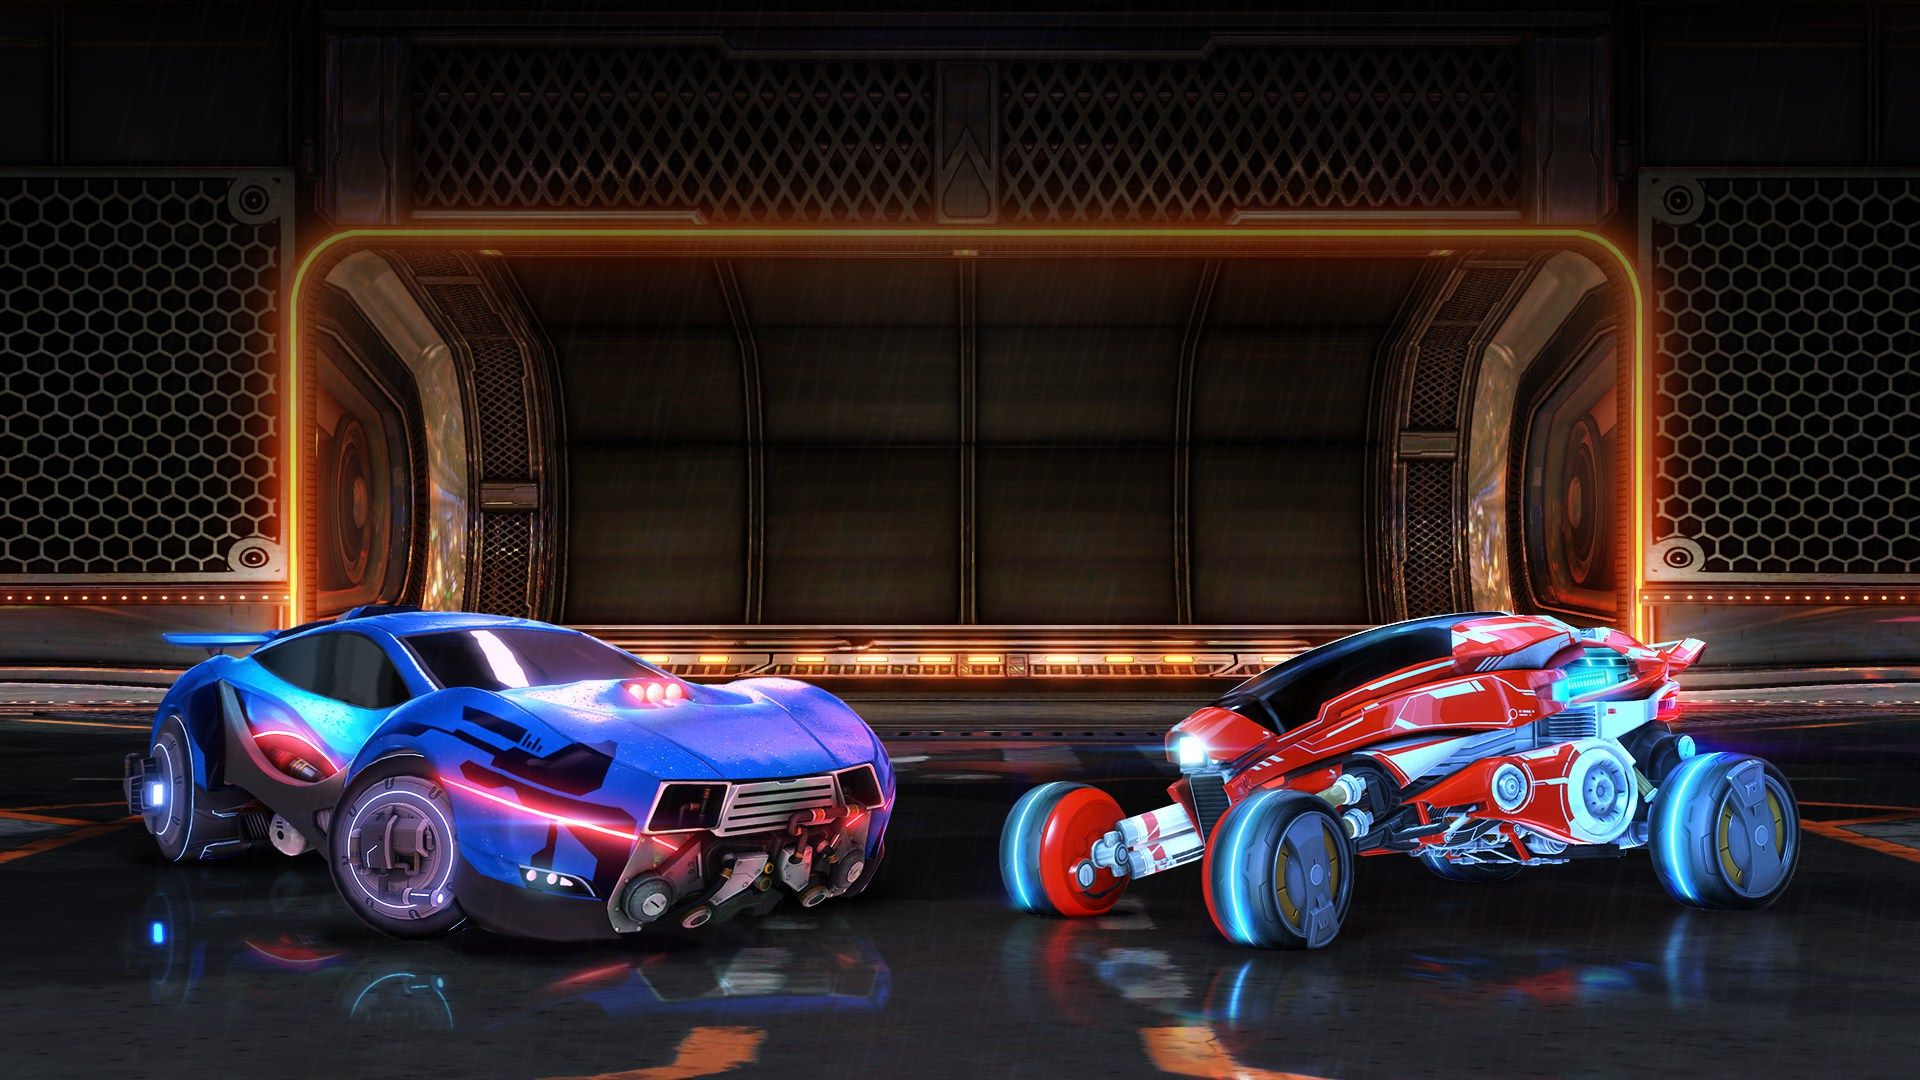 Rocket League Is Heading To Tokyo Hd backgrounds, Flying